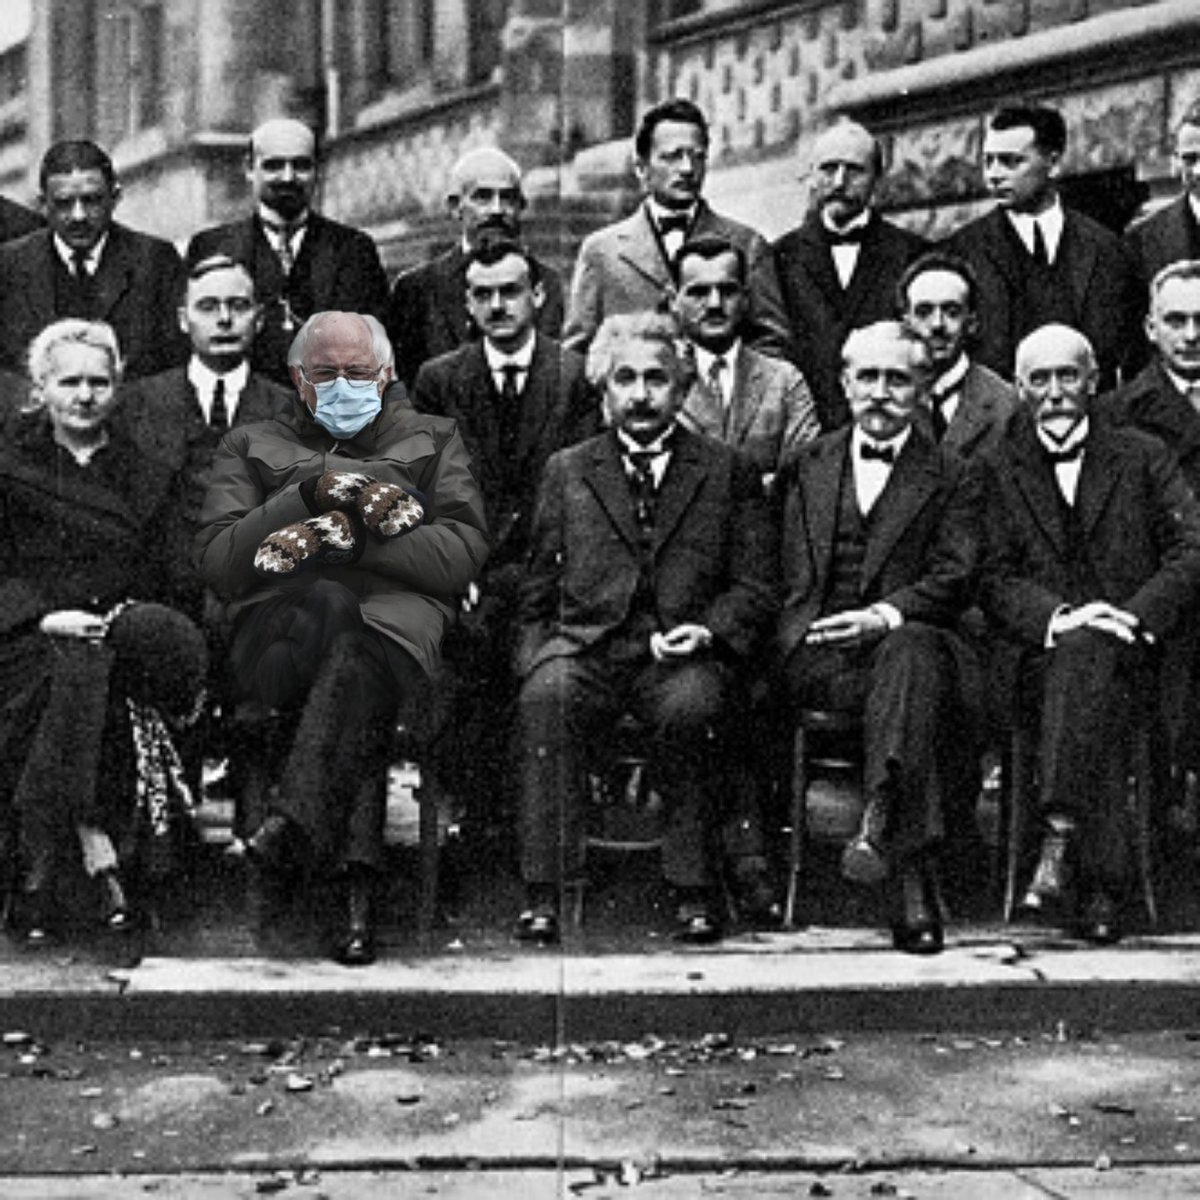 Just wanted to contribute to the cause 😂   #BernieSanders #Bernie #BernieMeme #BernieSits #berniesandersmeme #Berniememes #Einstein #USA #usacapitol